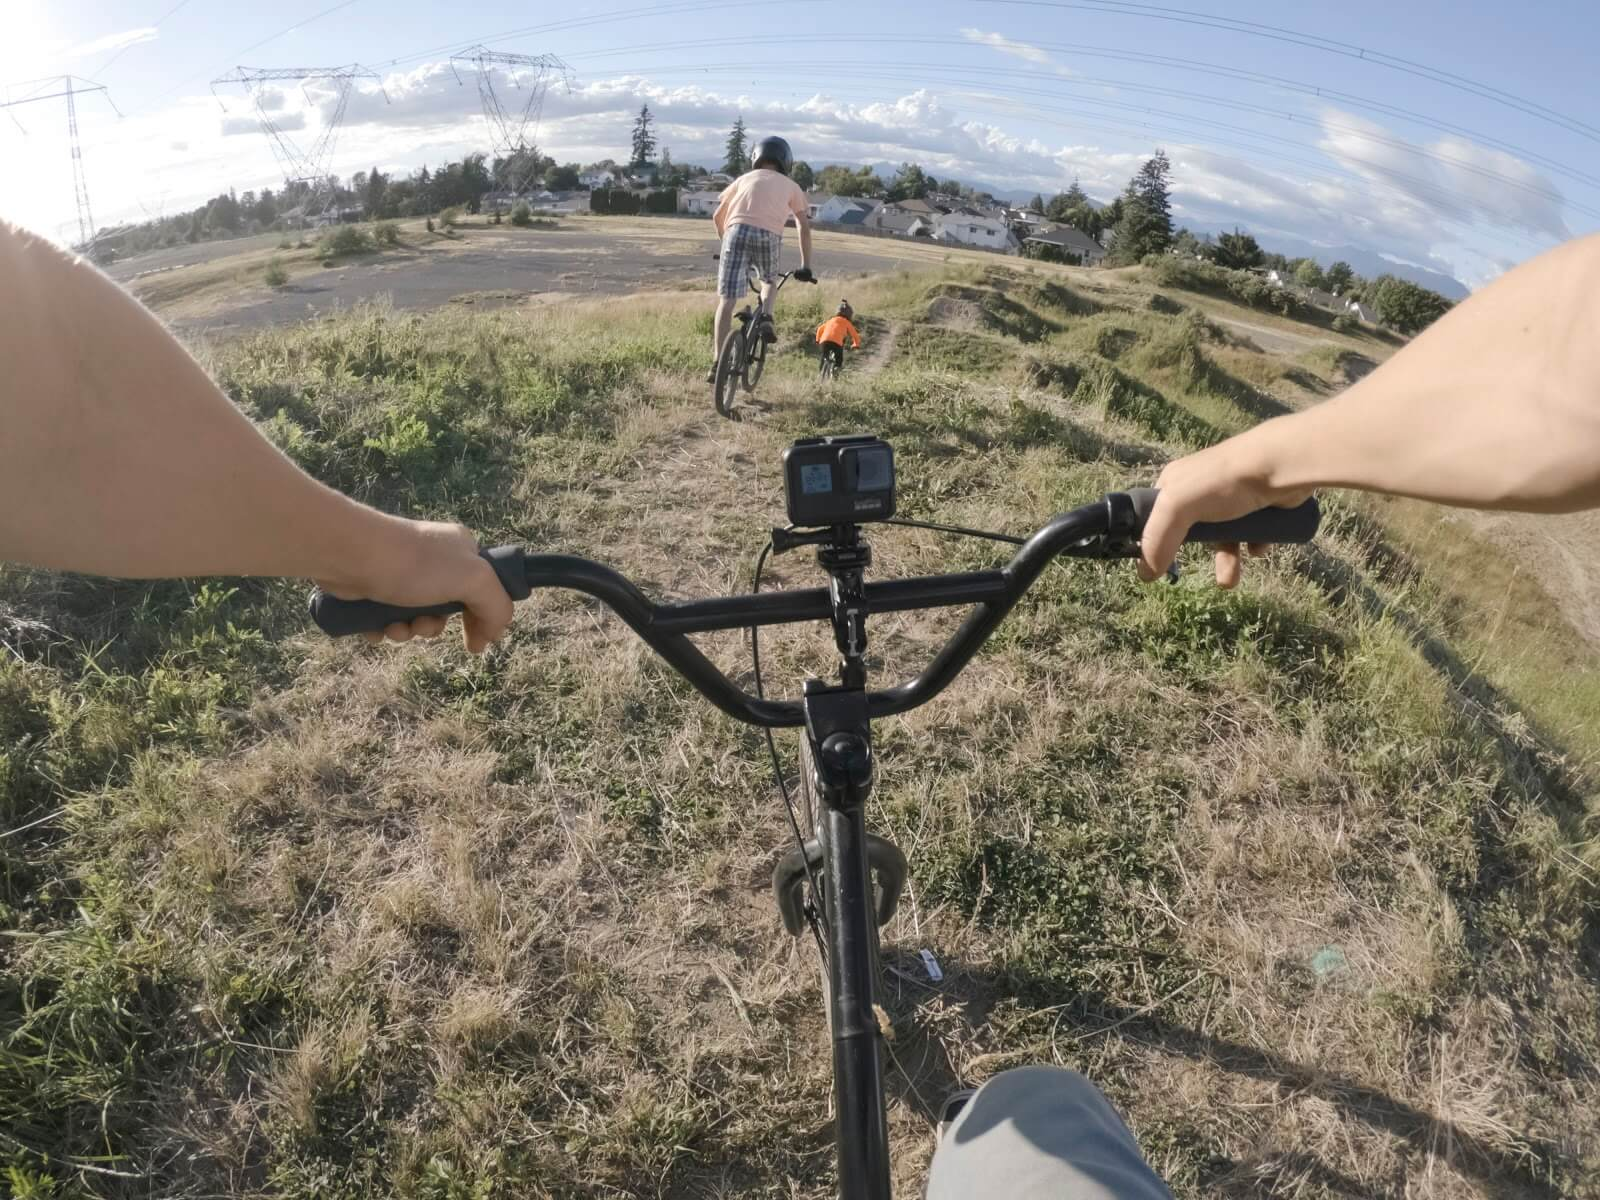 first-person perspective of a person riding a bike in grassy fields